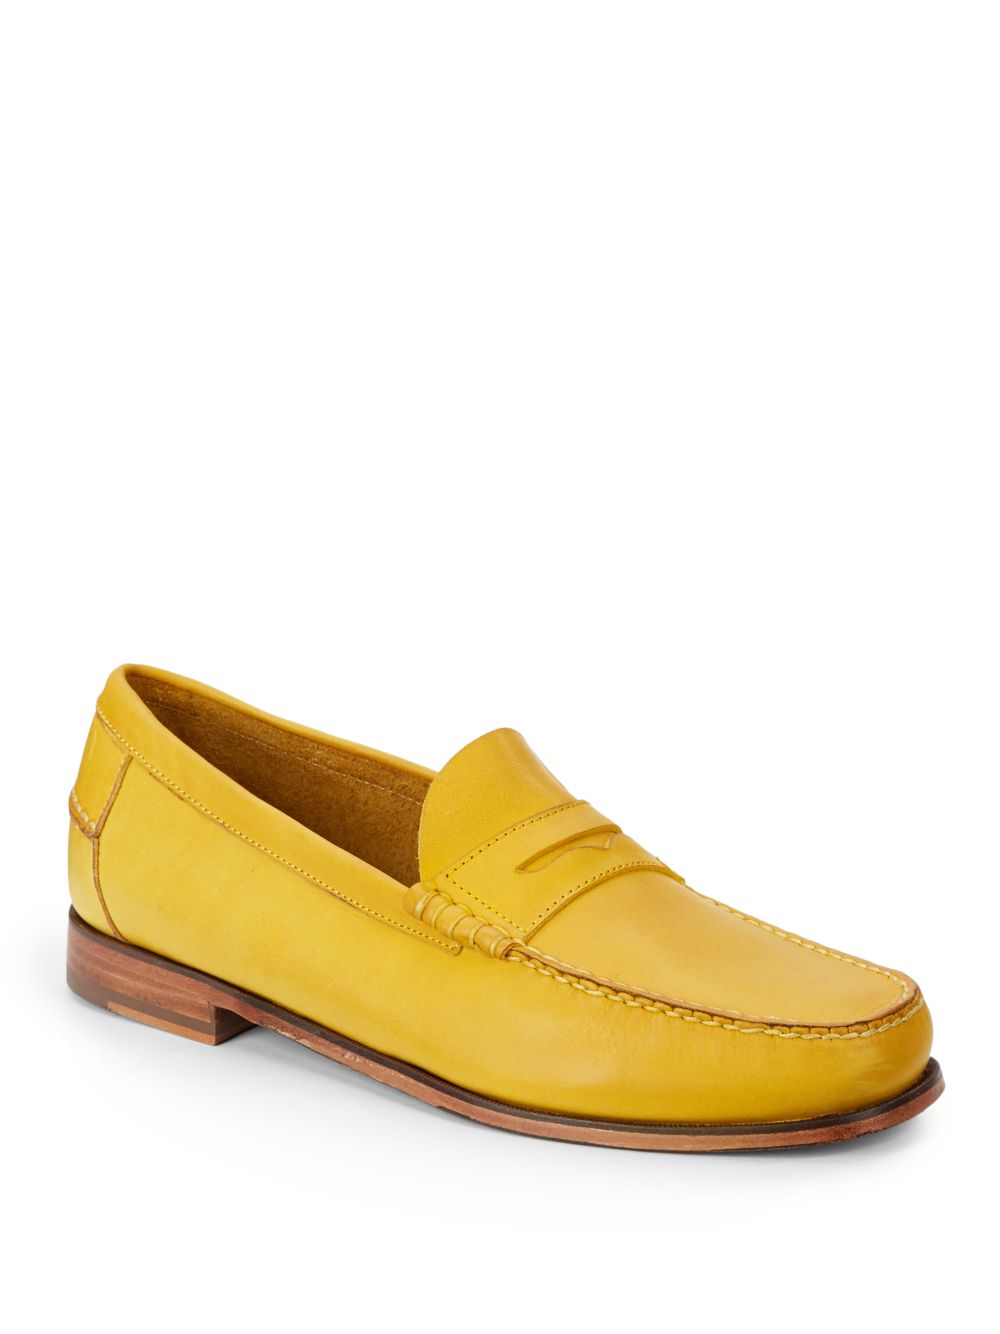 Saks Off Fifth Shoes Mens